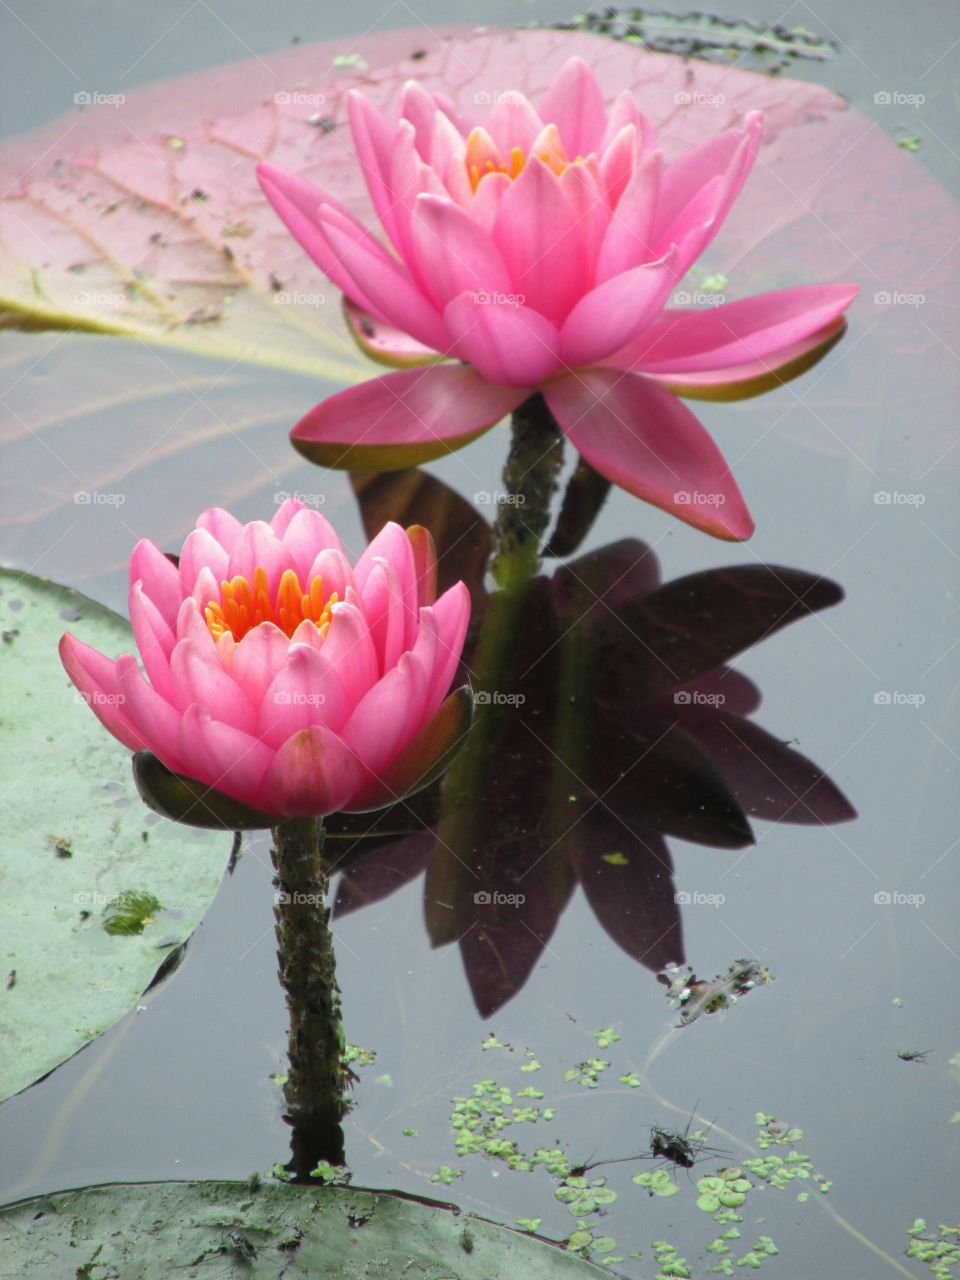 Water lily growing in pond